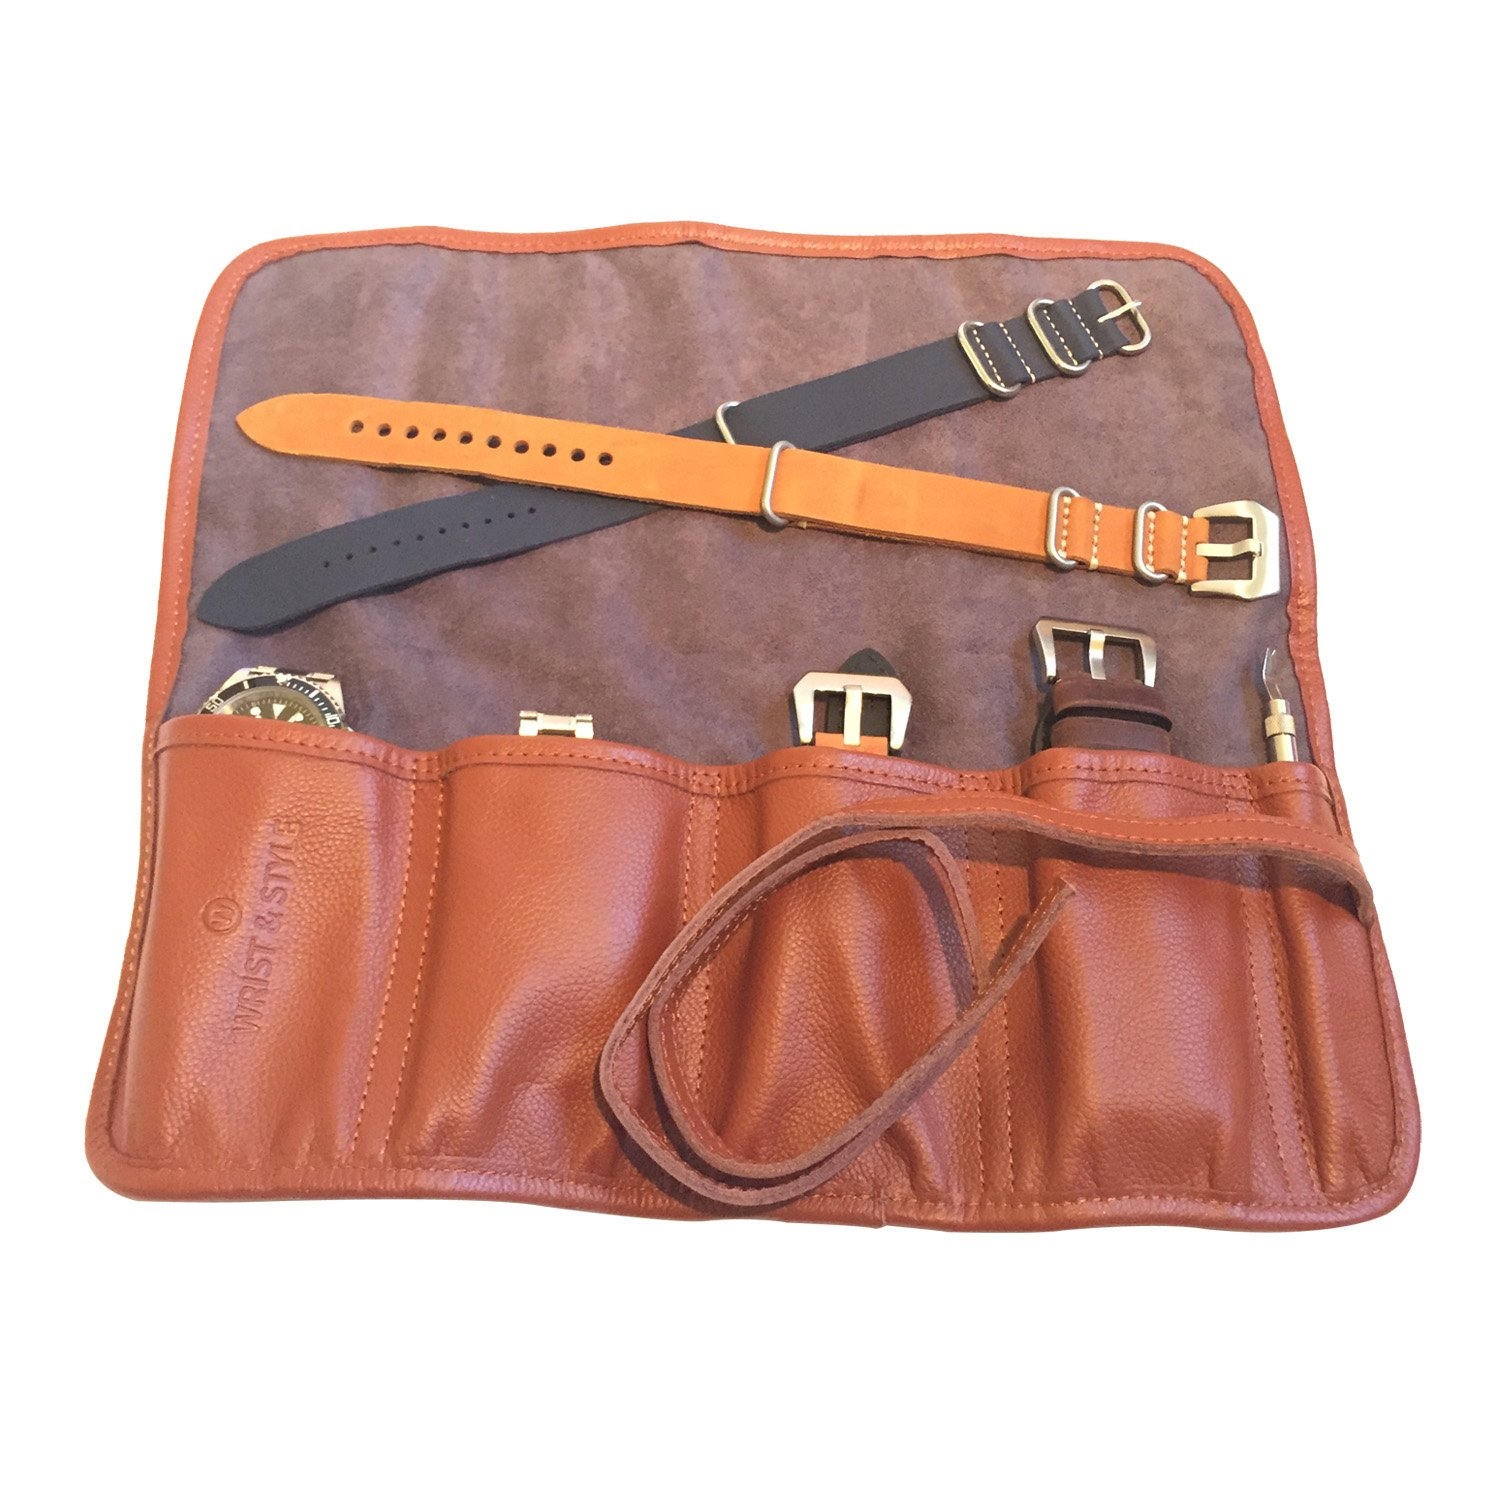 Leather Watch Roll by W&S for Travel and Storage for Watches: Pockets Securely Hold Watches Straps, Tools and Accessories (4-Slot Brown)